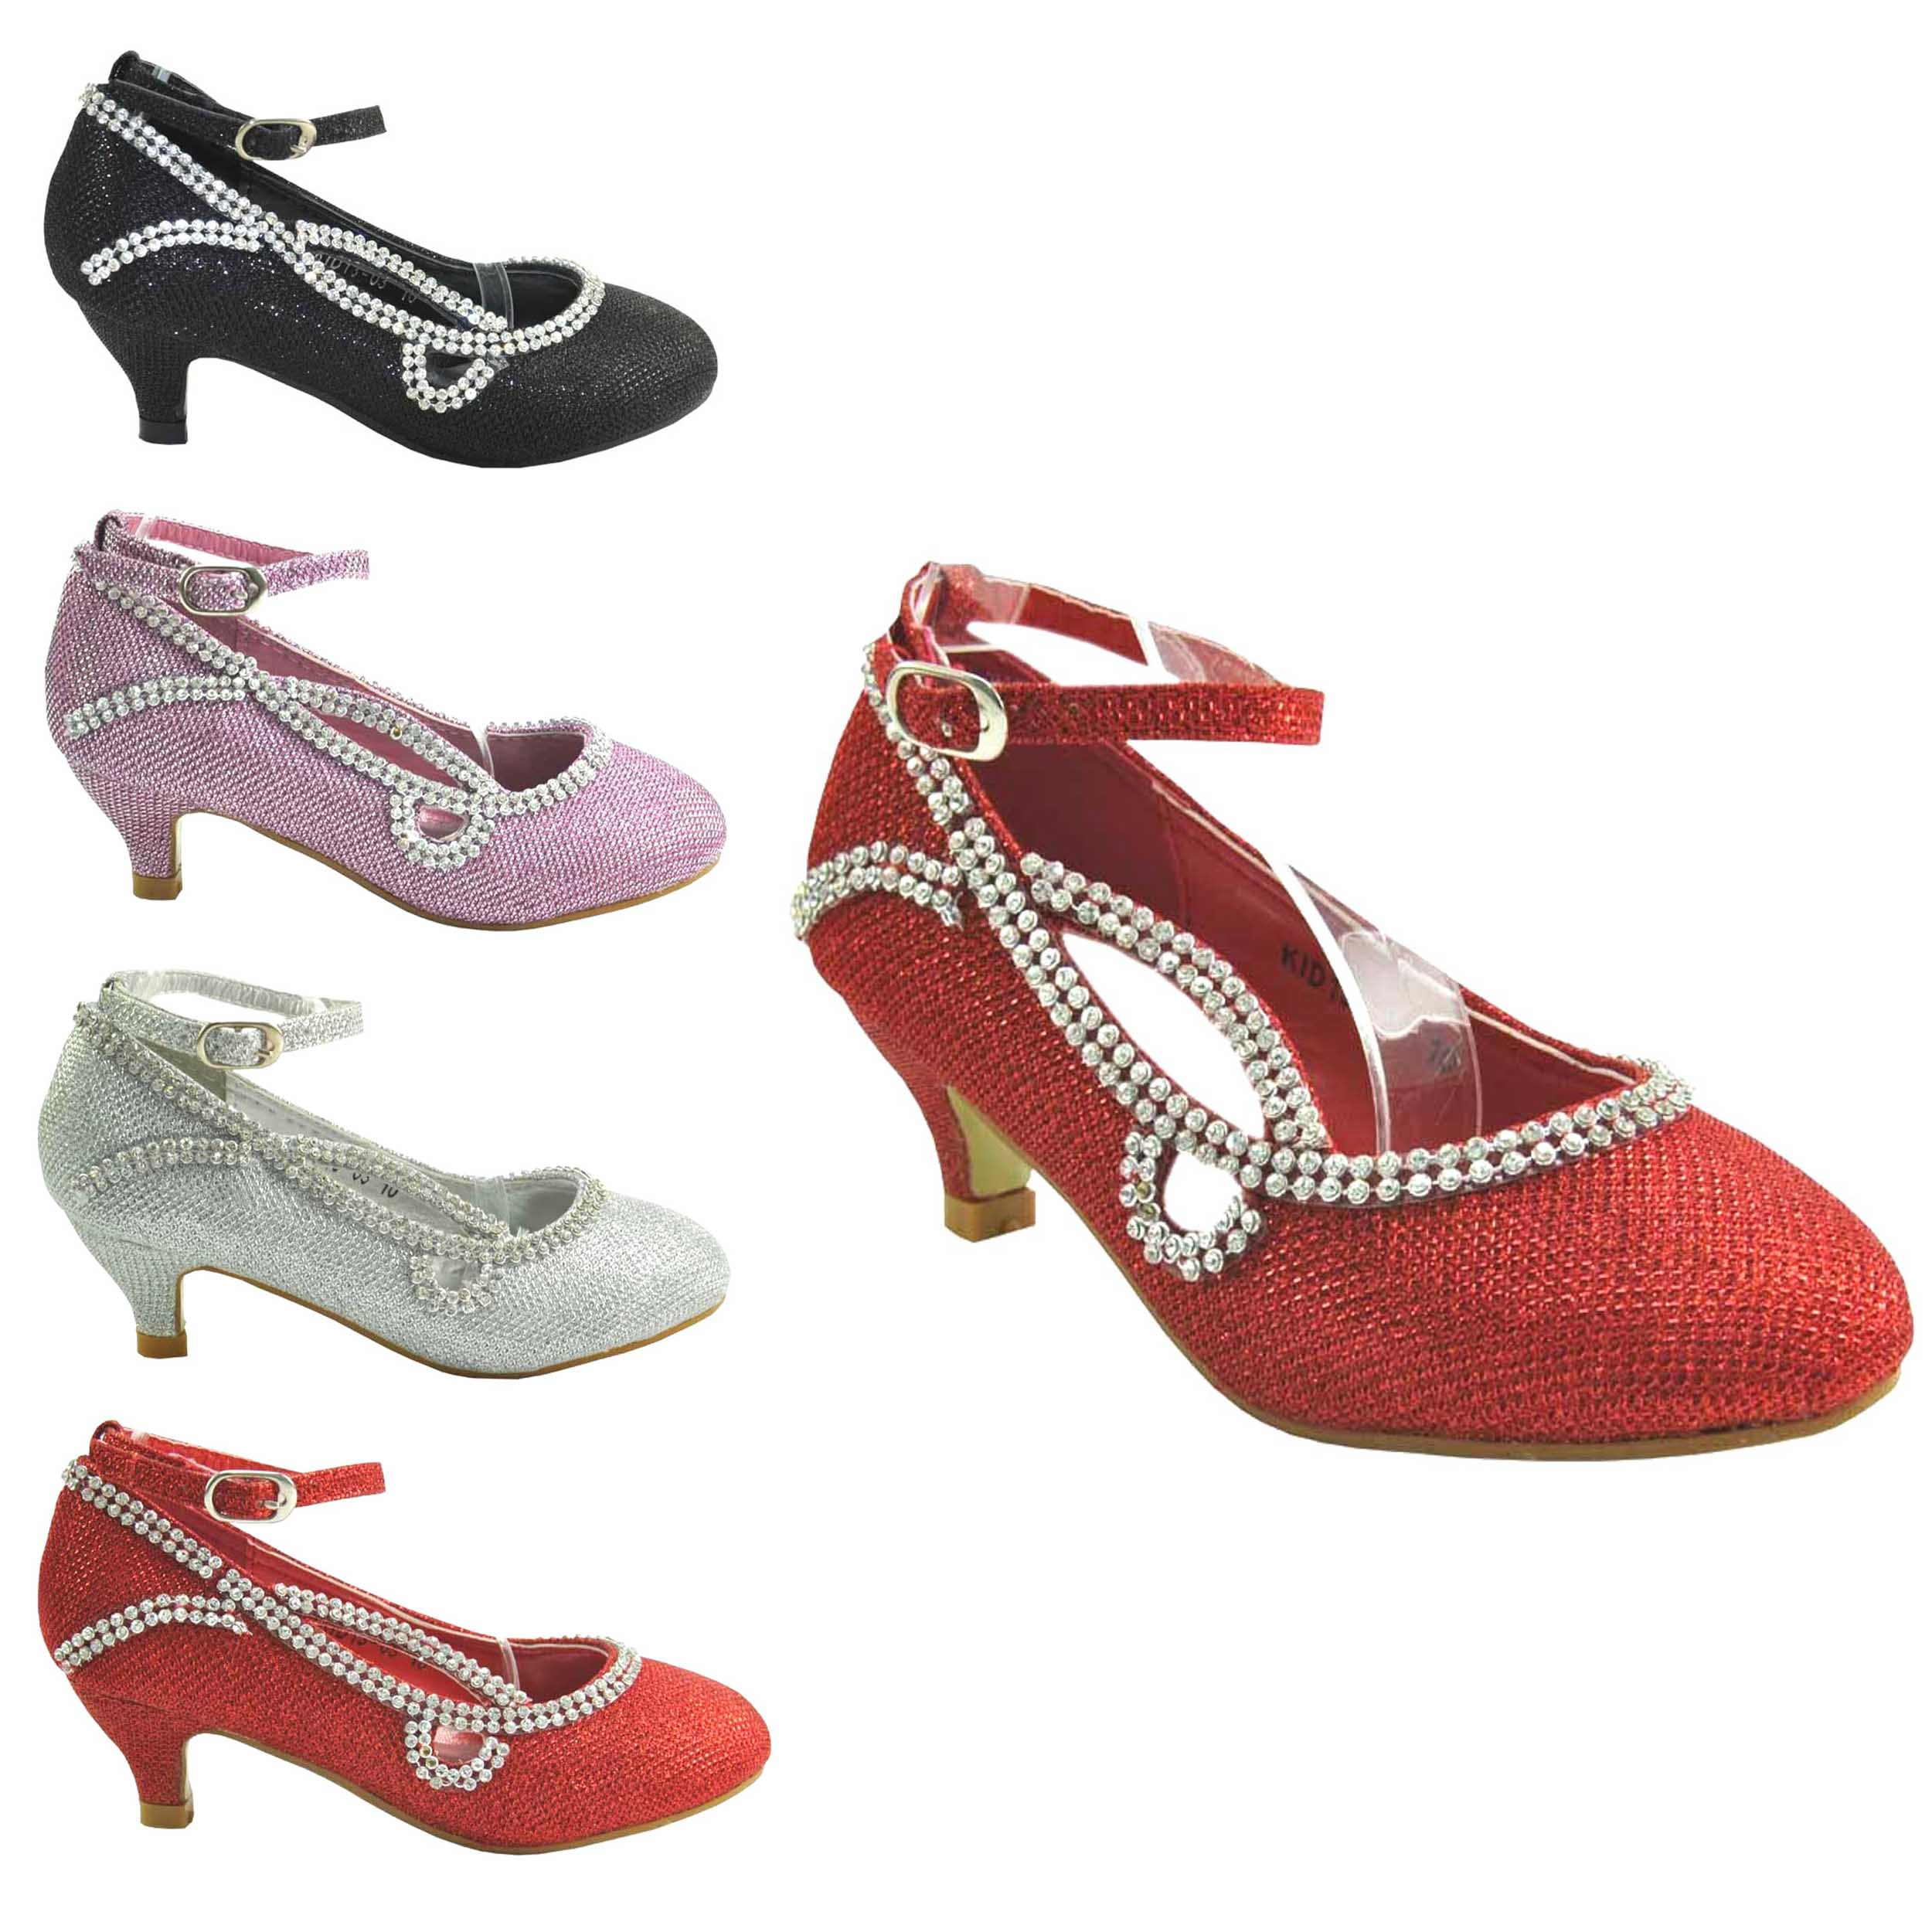 Shoes With Kitten Heels Uk